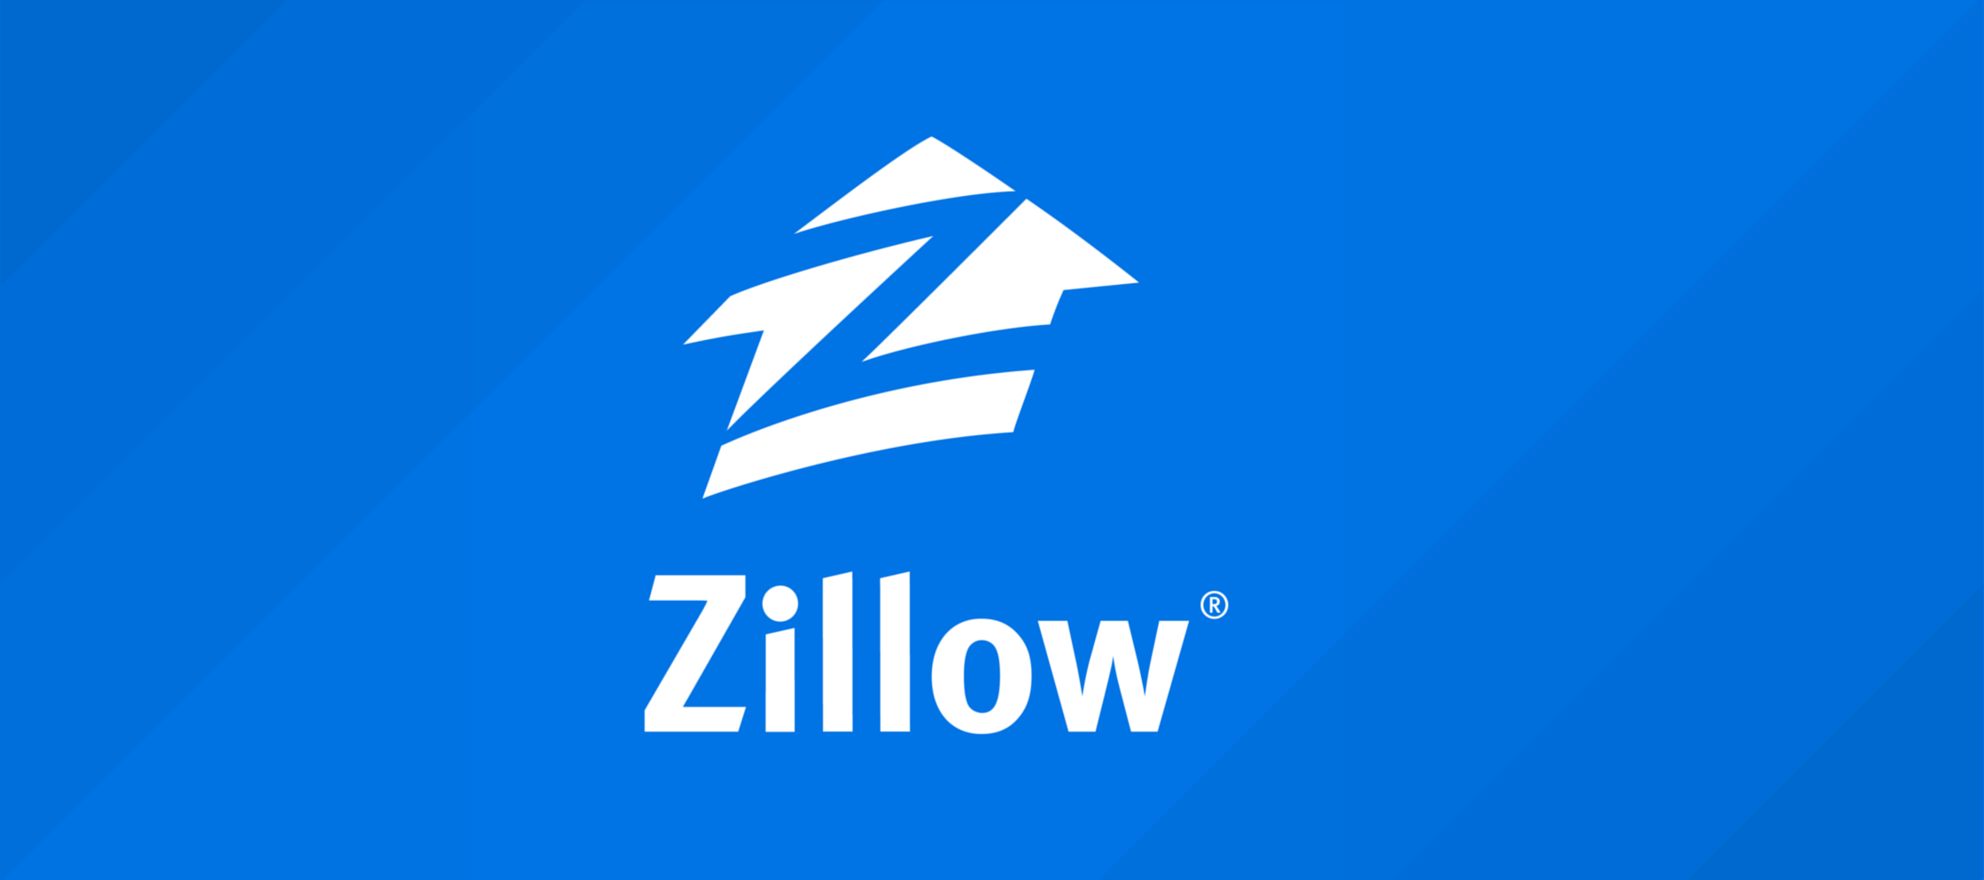 The 25 Best Companies To Work For In 2016 - Zillow